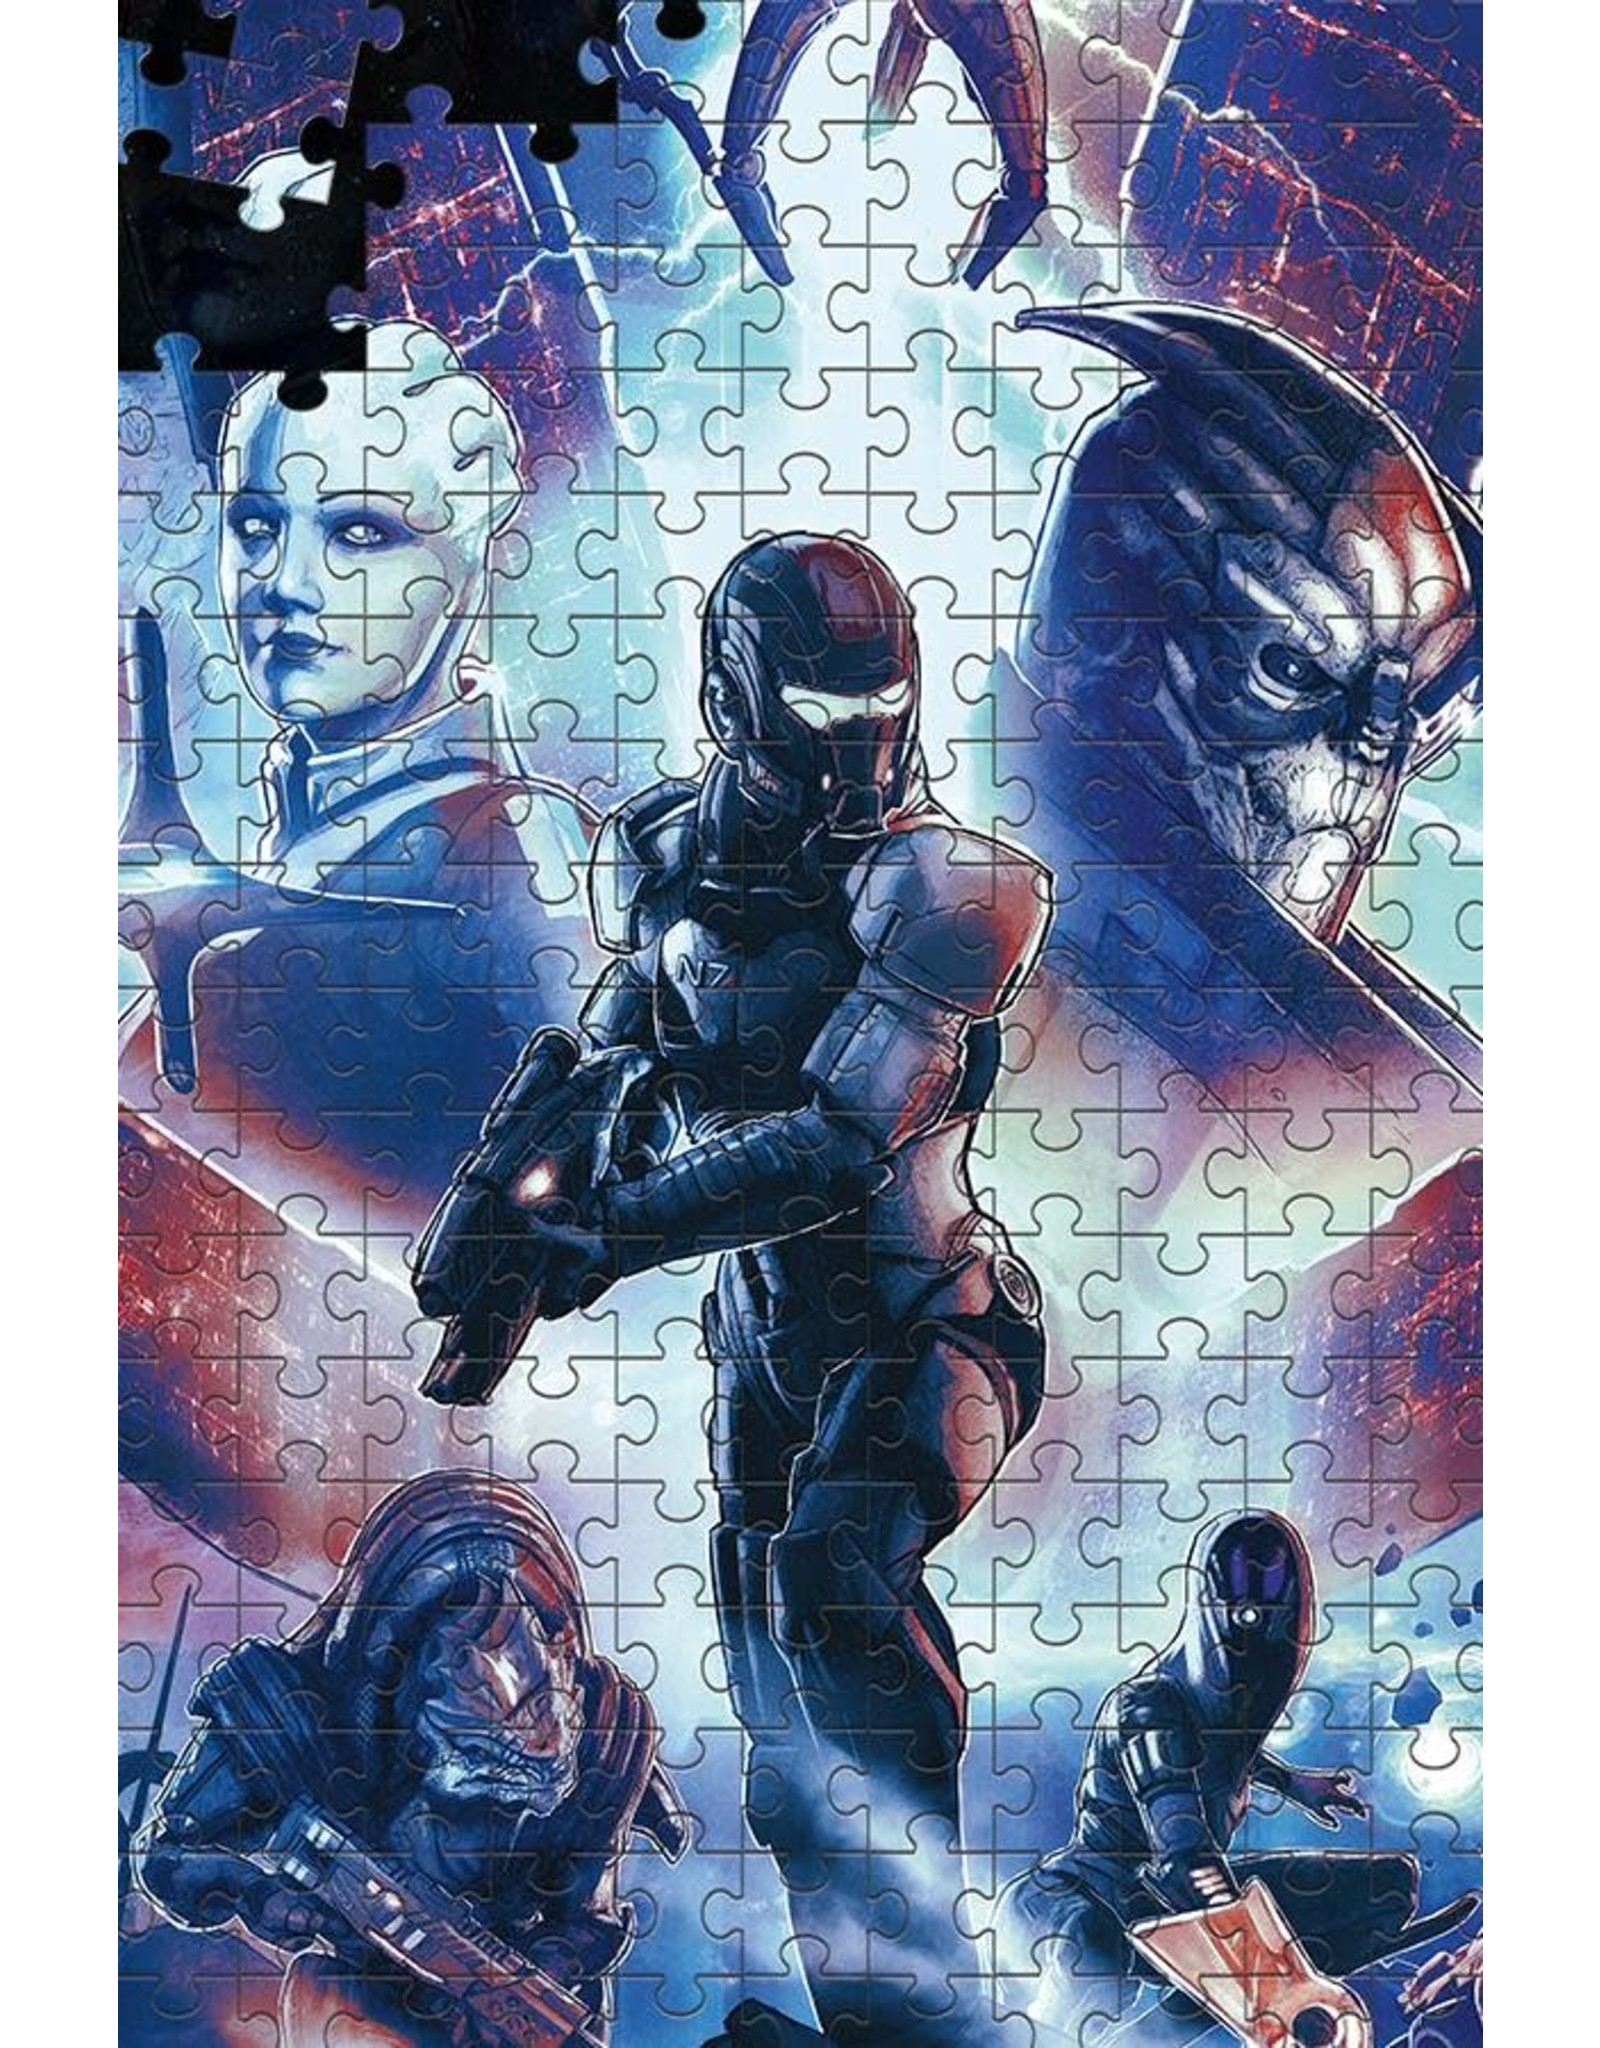 Bioware Mass Effects Heroes Puzzle 1000PC